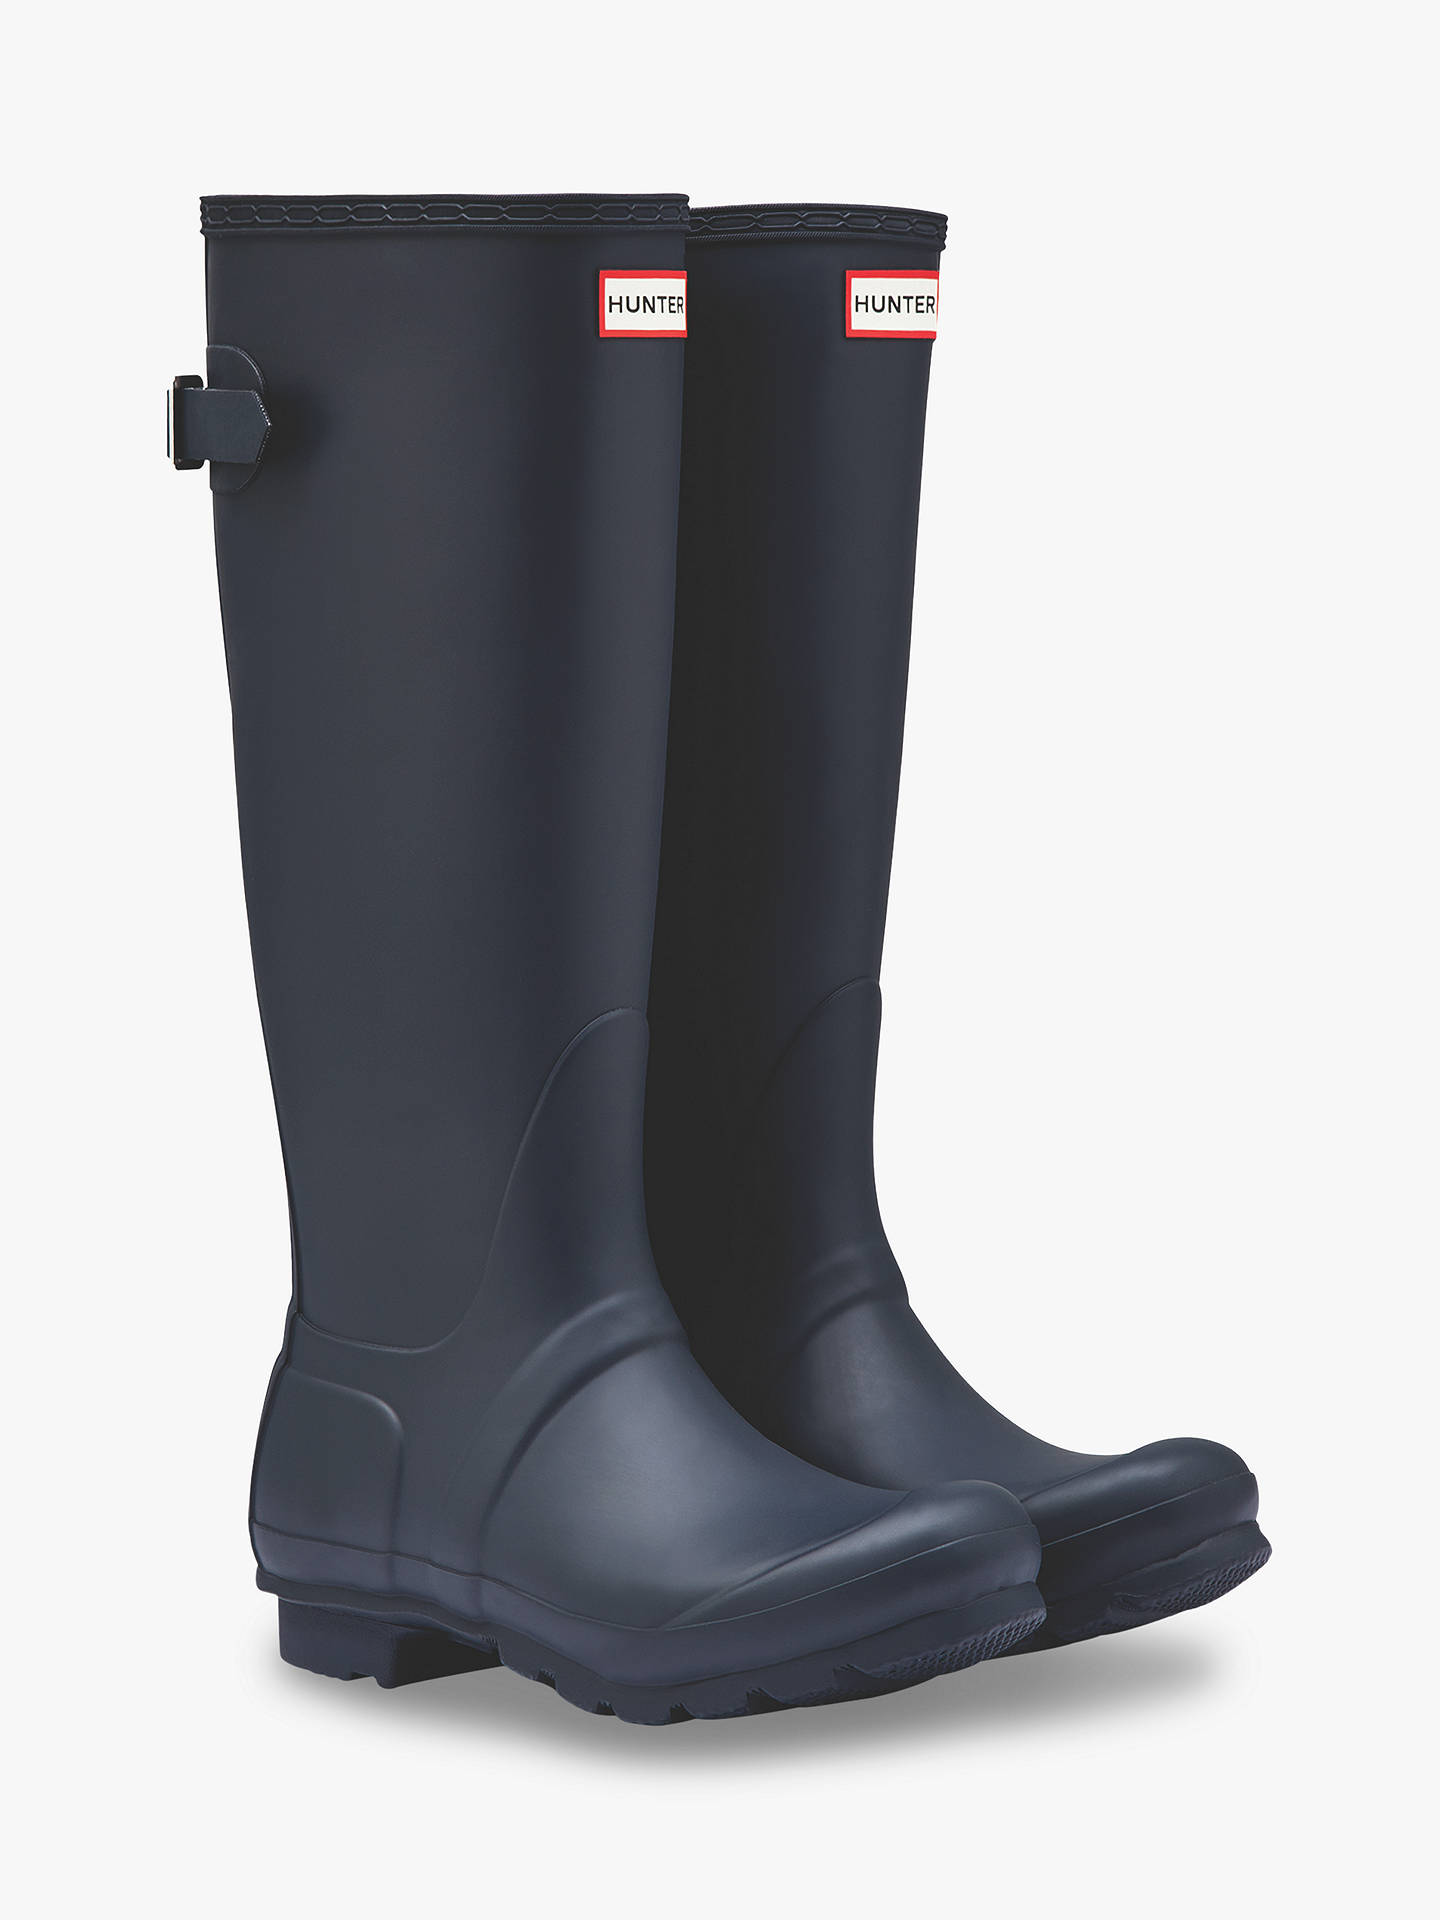 BuyHunter Women's Original Waterproof Tall Adjustable Wellington Boots, Navy, 4 Online at johnlewis.com